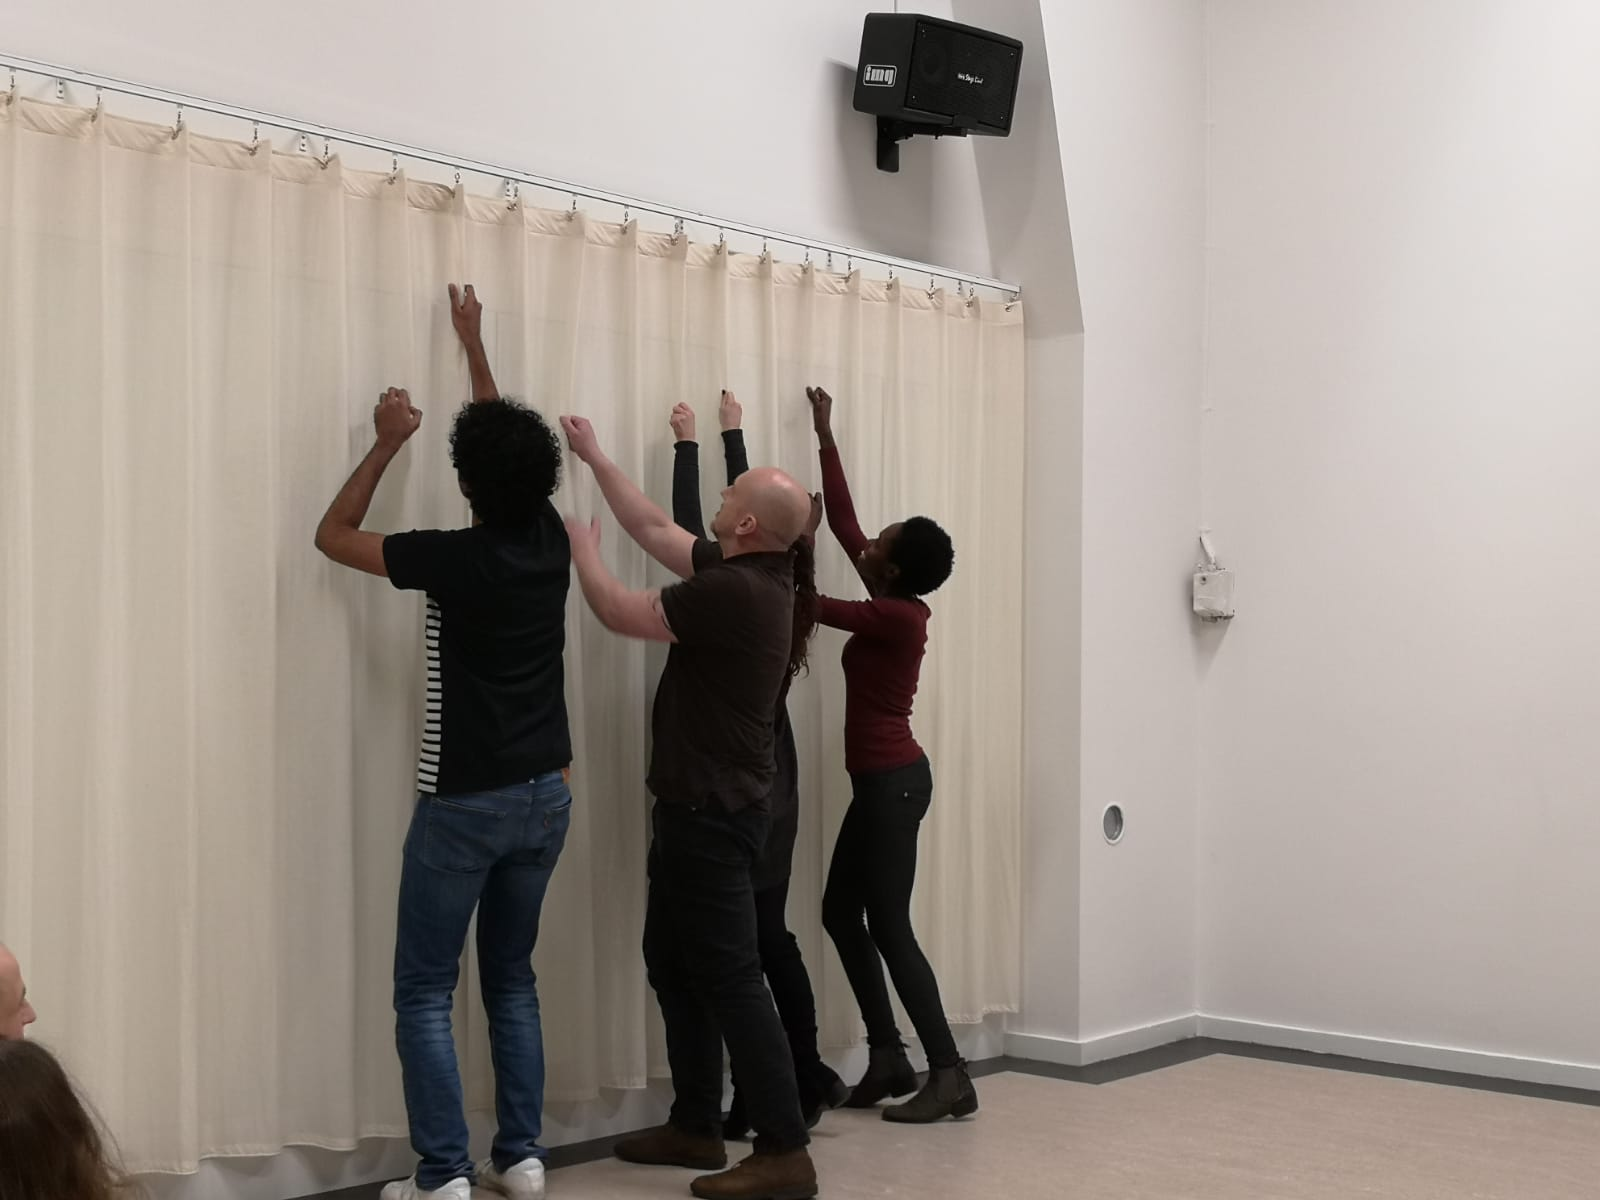 Acting Class Act Attack. A group of four people stand in a row, facing a curtain. Their arms reach up, like they want to bring down the curtain.